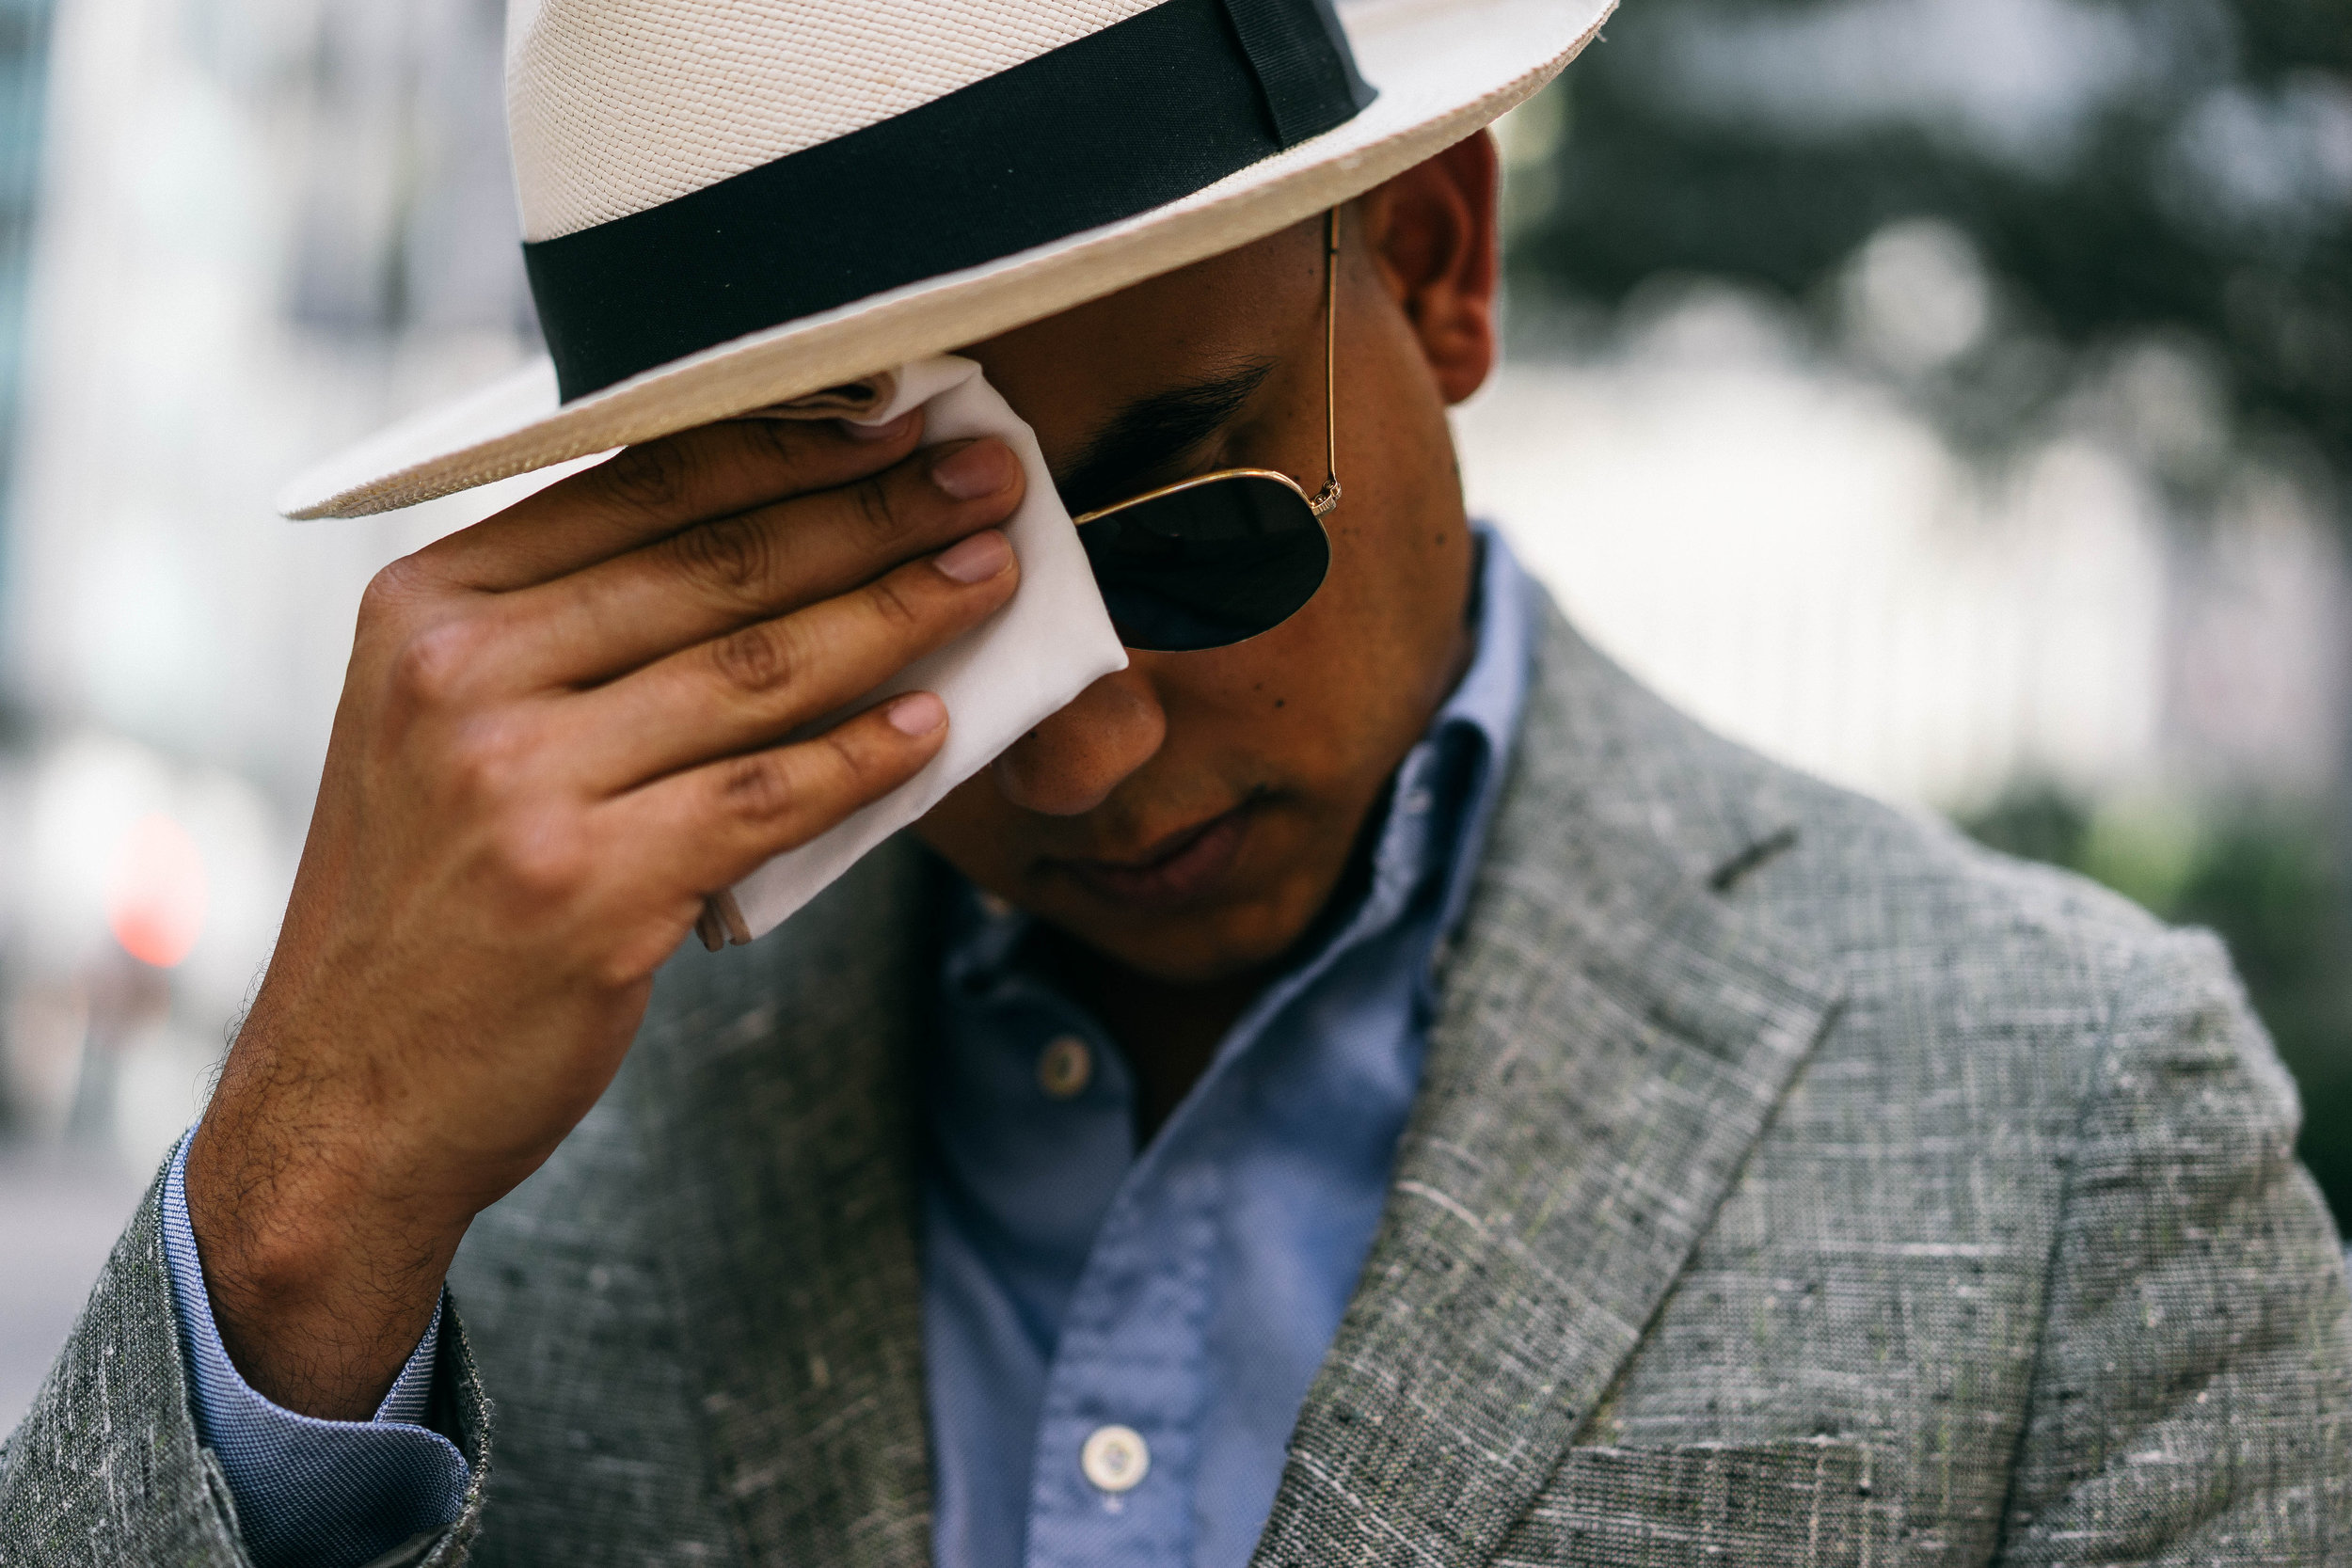 You'd be hard-pressed to catch me this summer without a pocket-square. I always use mine to wipe the sweat off my brow, and  these linen squares from The Tie Bar  are perfectly light and durable. And for $8-10/ea., you can't buy enough!